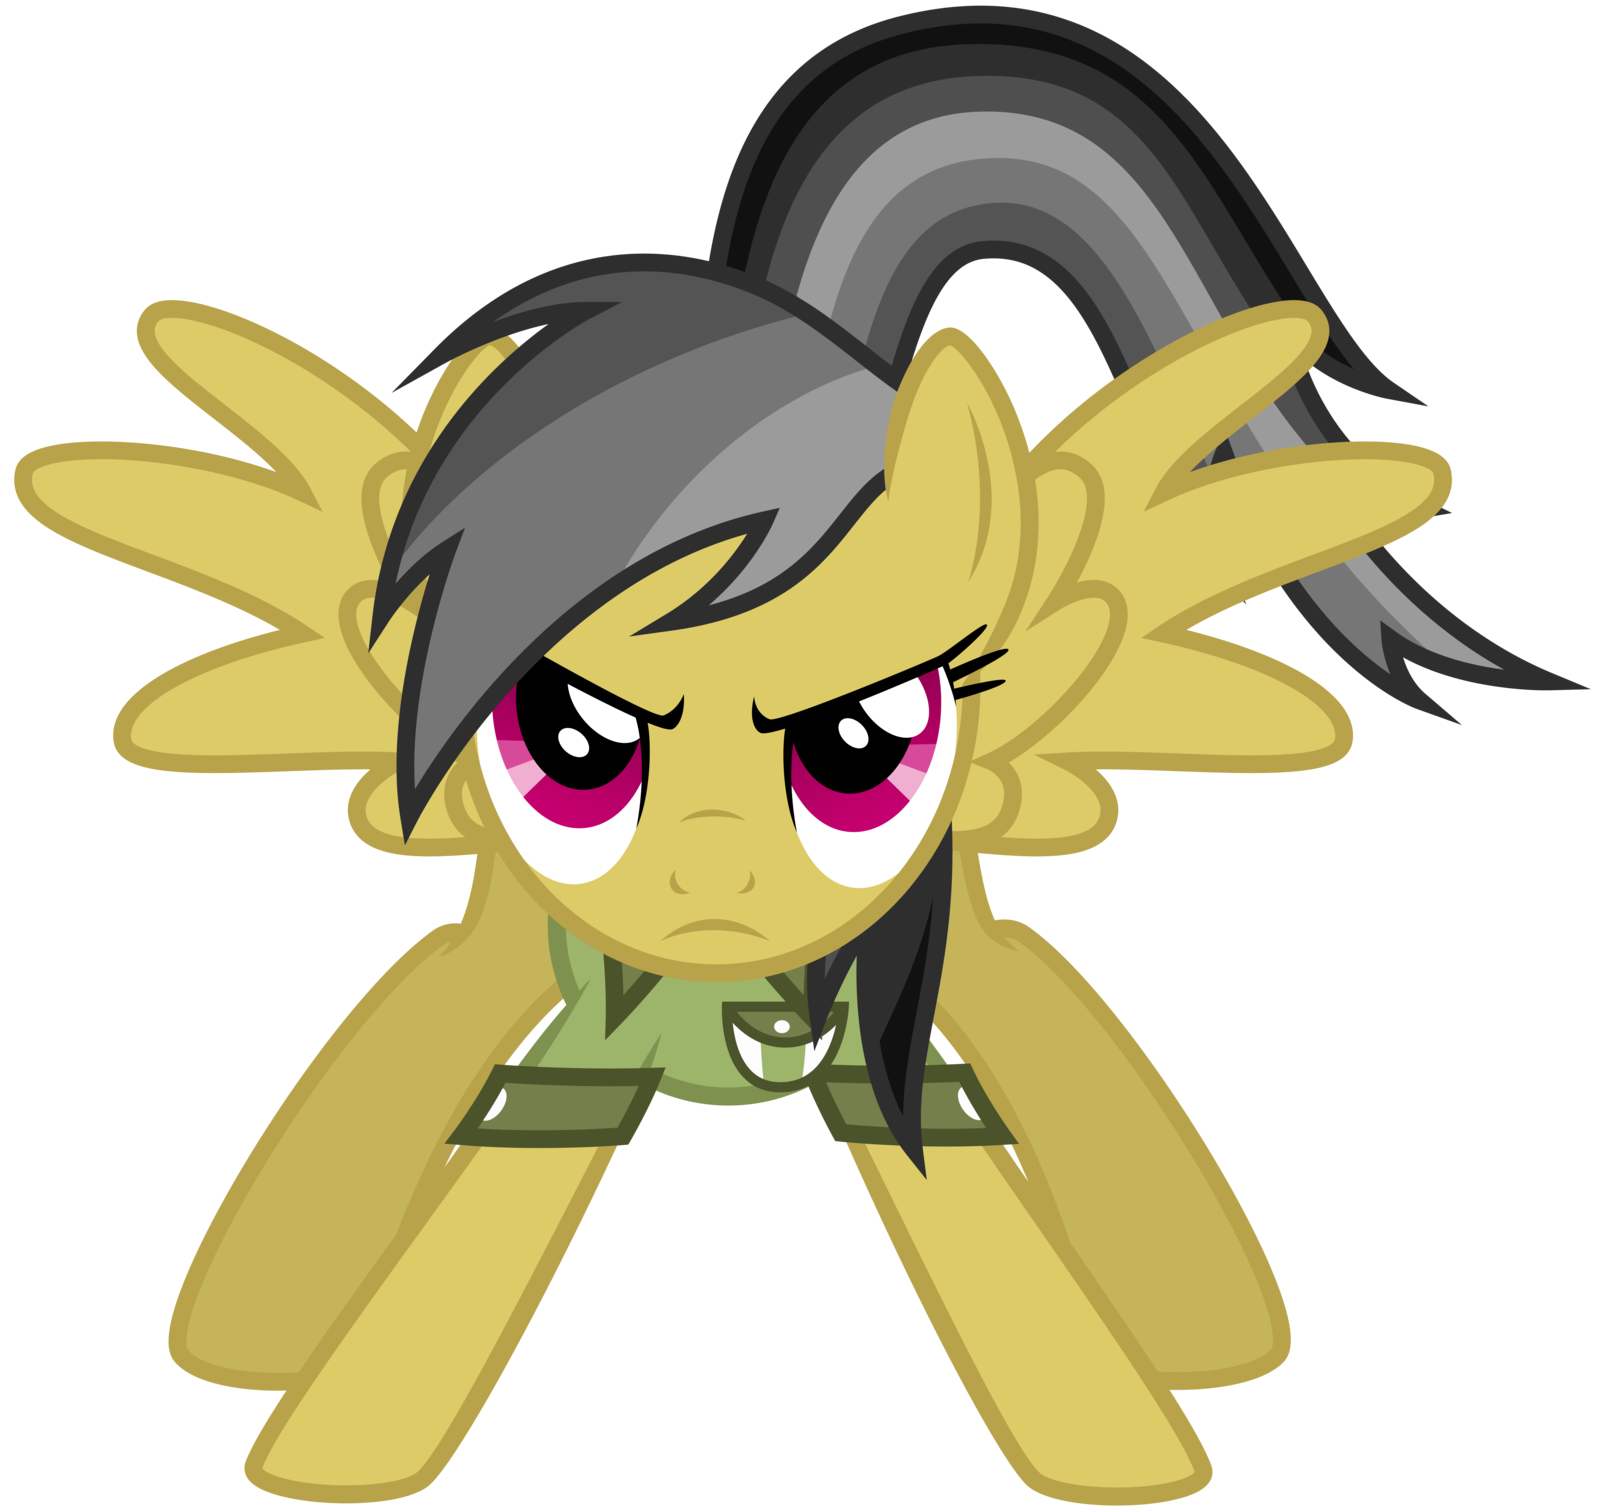 Equestria Daily - MLP Stuff!: Possible Synopsis for ...